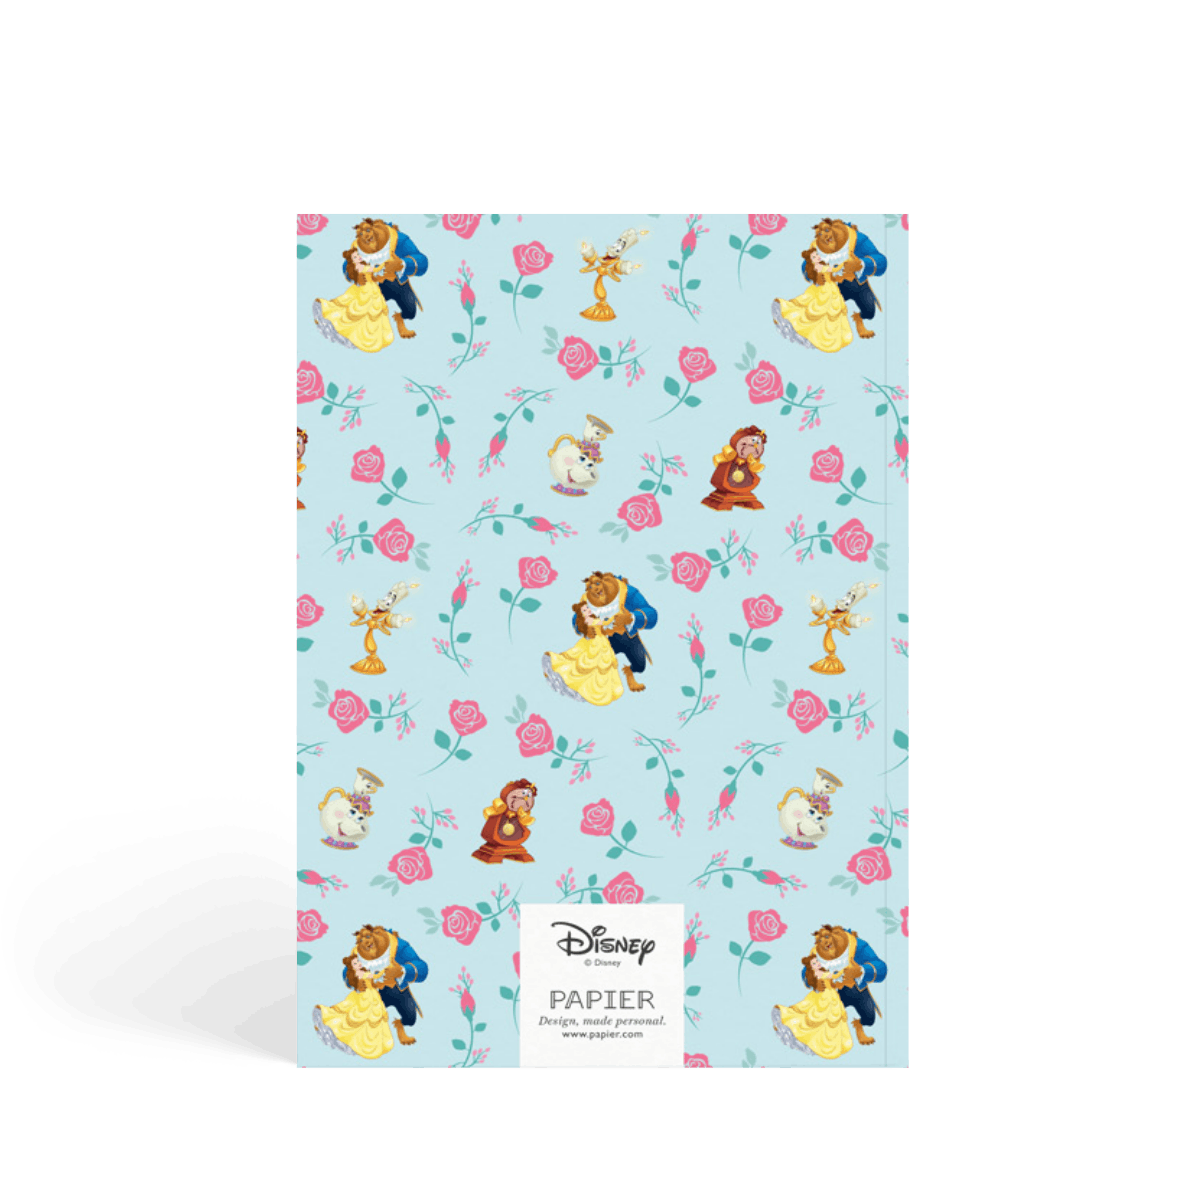 Https%3a%2f%2fwww.papier.com%2fproduct image%2f55699%2f5%2fbeauty the beast 13377 back 1548949030.png?ixlib=rb 1.1